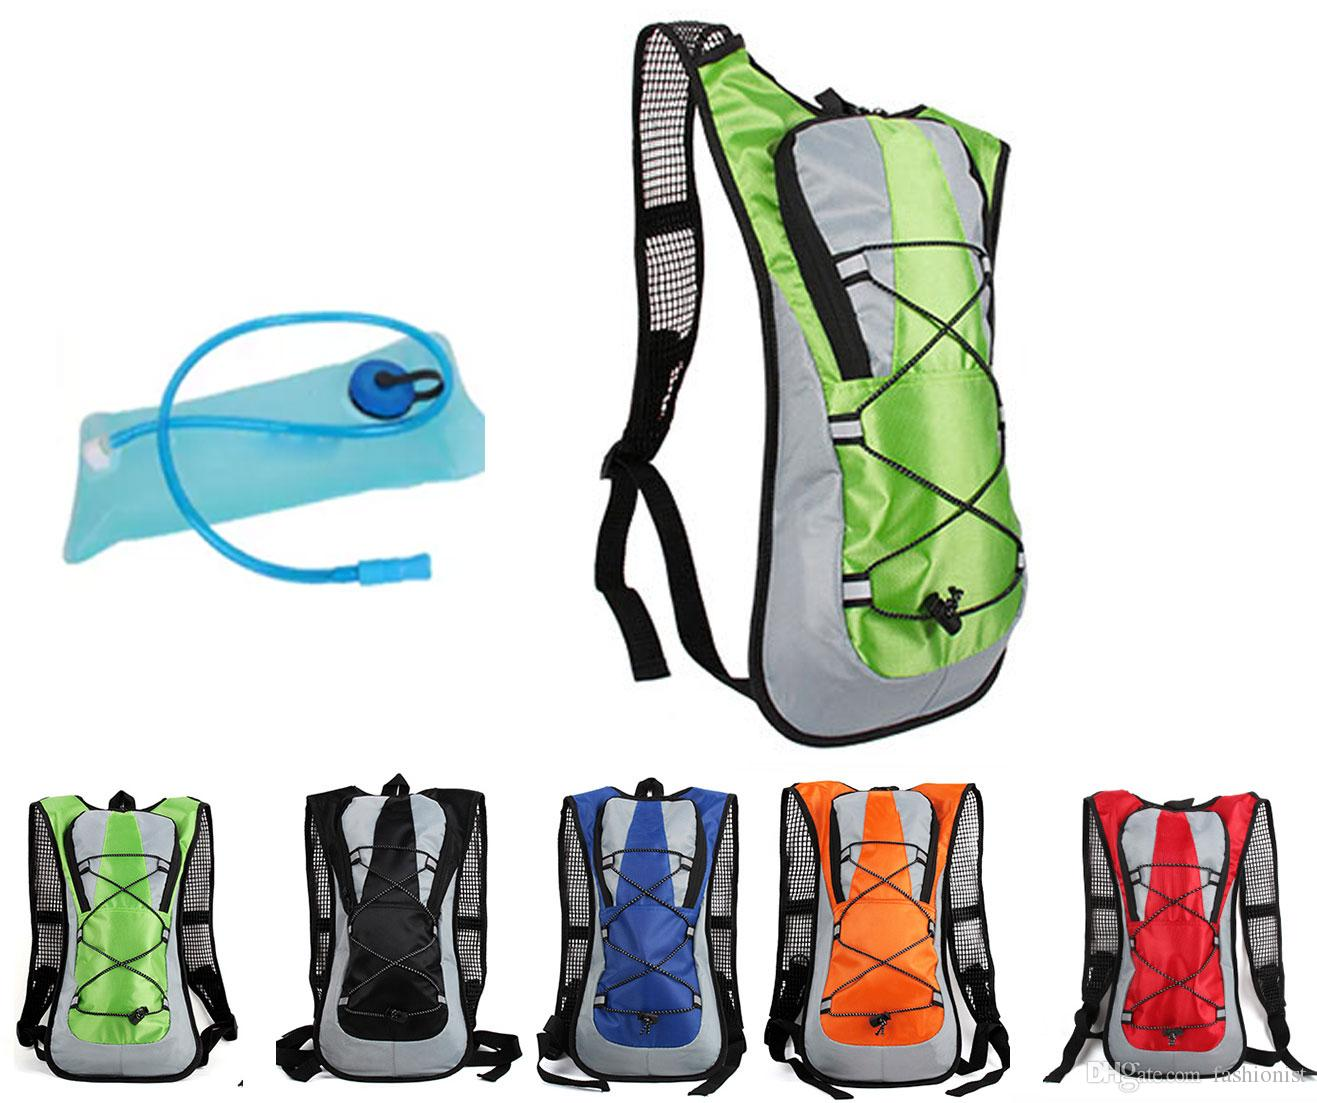 3cd1e9465c5c Outdoor sports Water Bag Cycling Bike Bicycle Backpack Water Pack 5L  Bladder Hump Backpack TPU Pouch Hydration System for Hiking Climbing